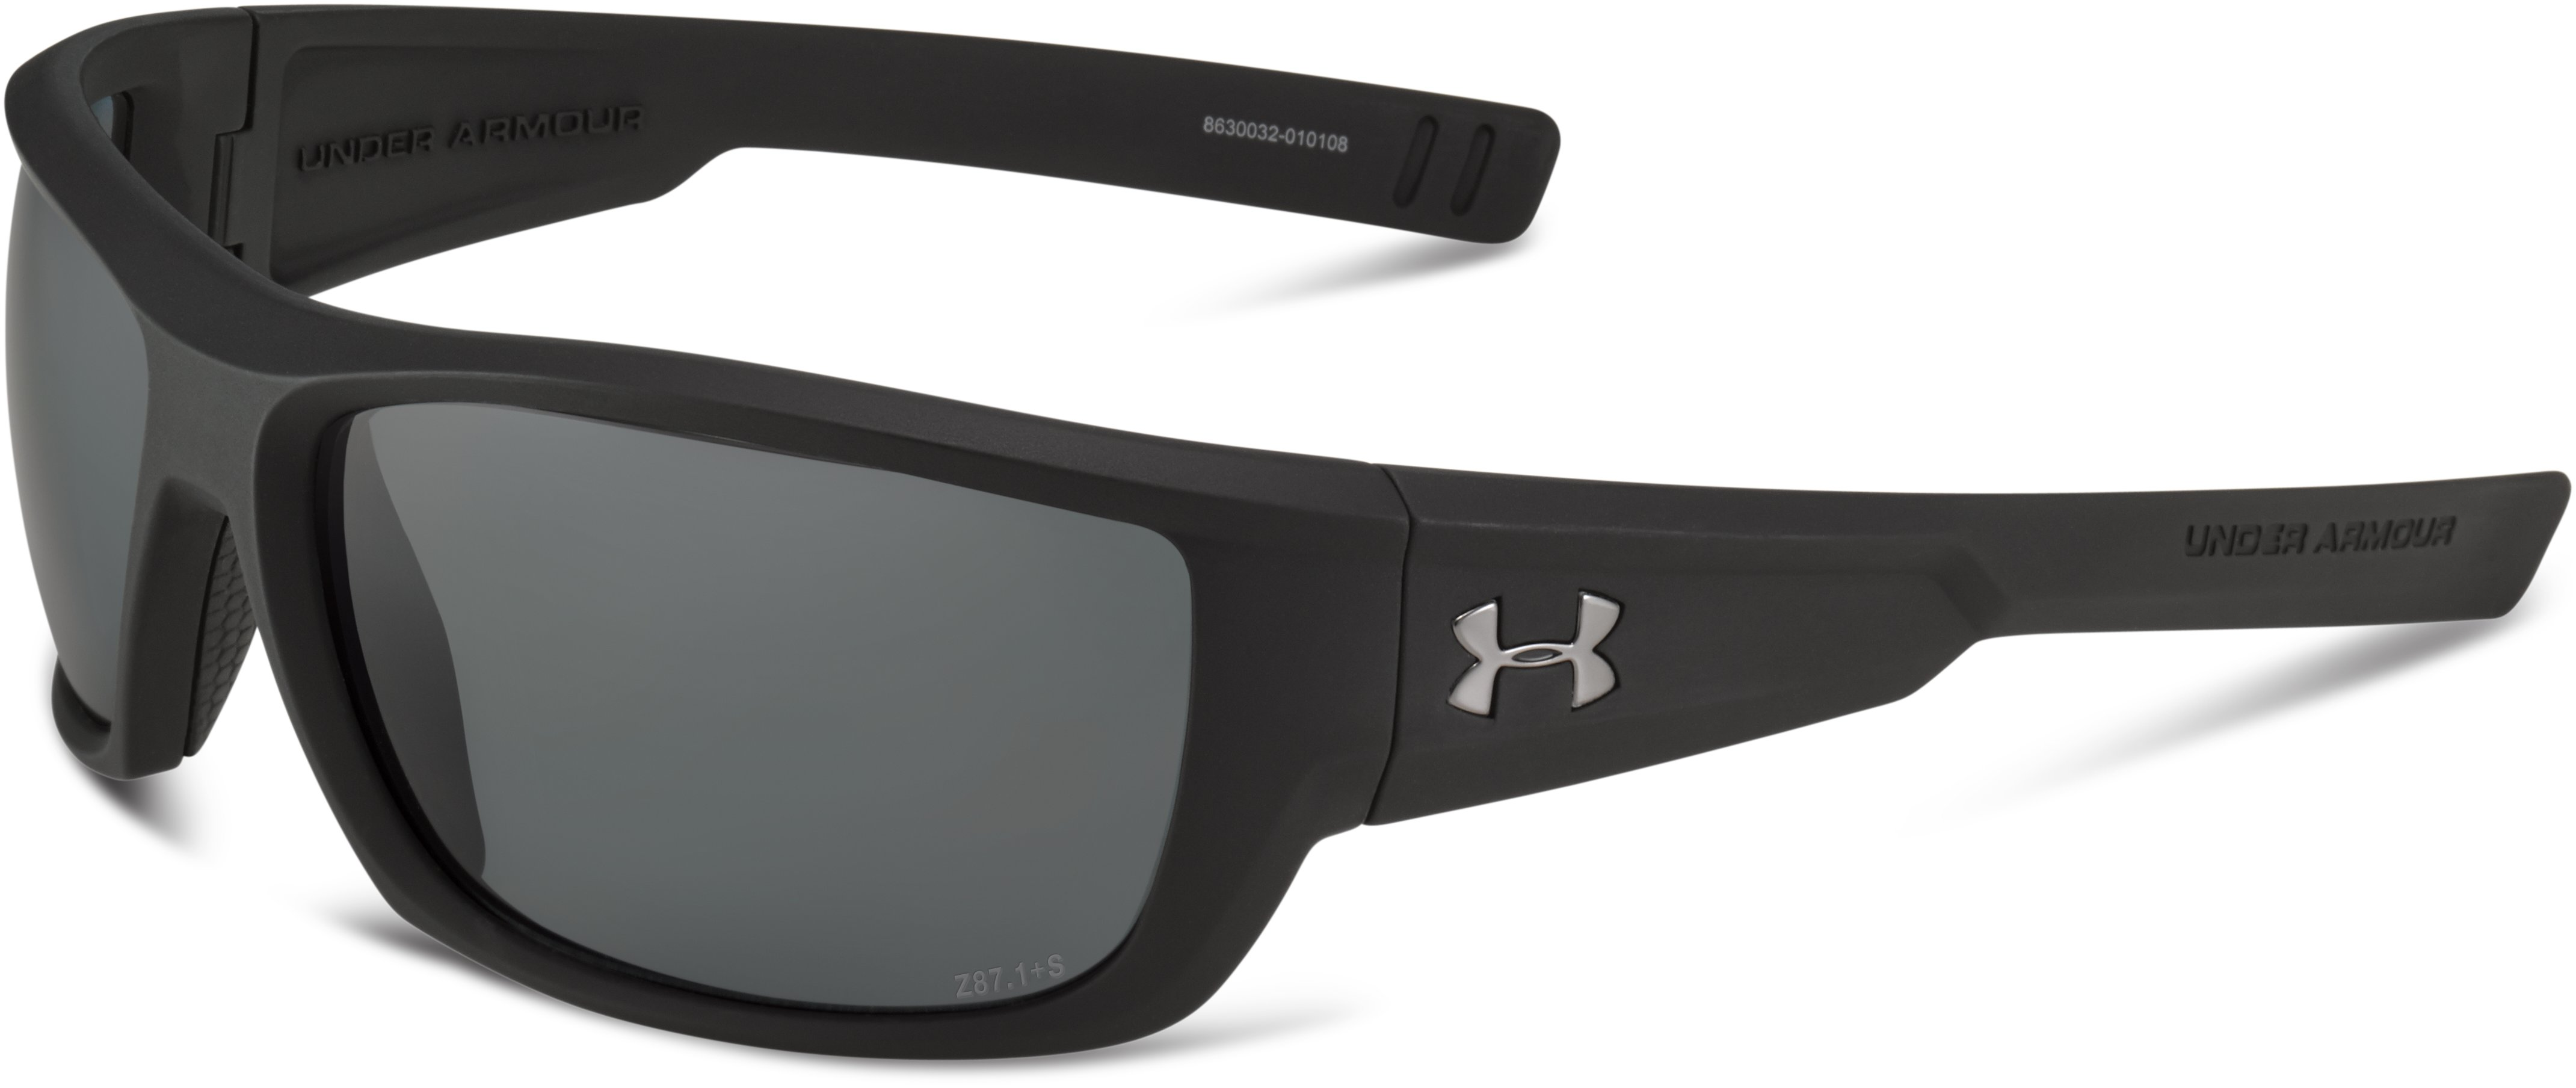 UA Rumble Storm Polarized Sunglasses, Satin Black, undefined